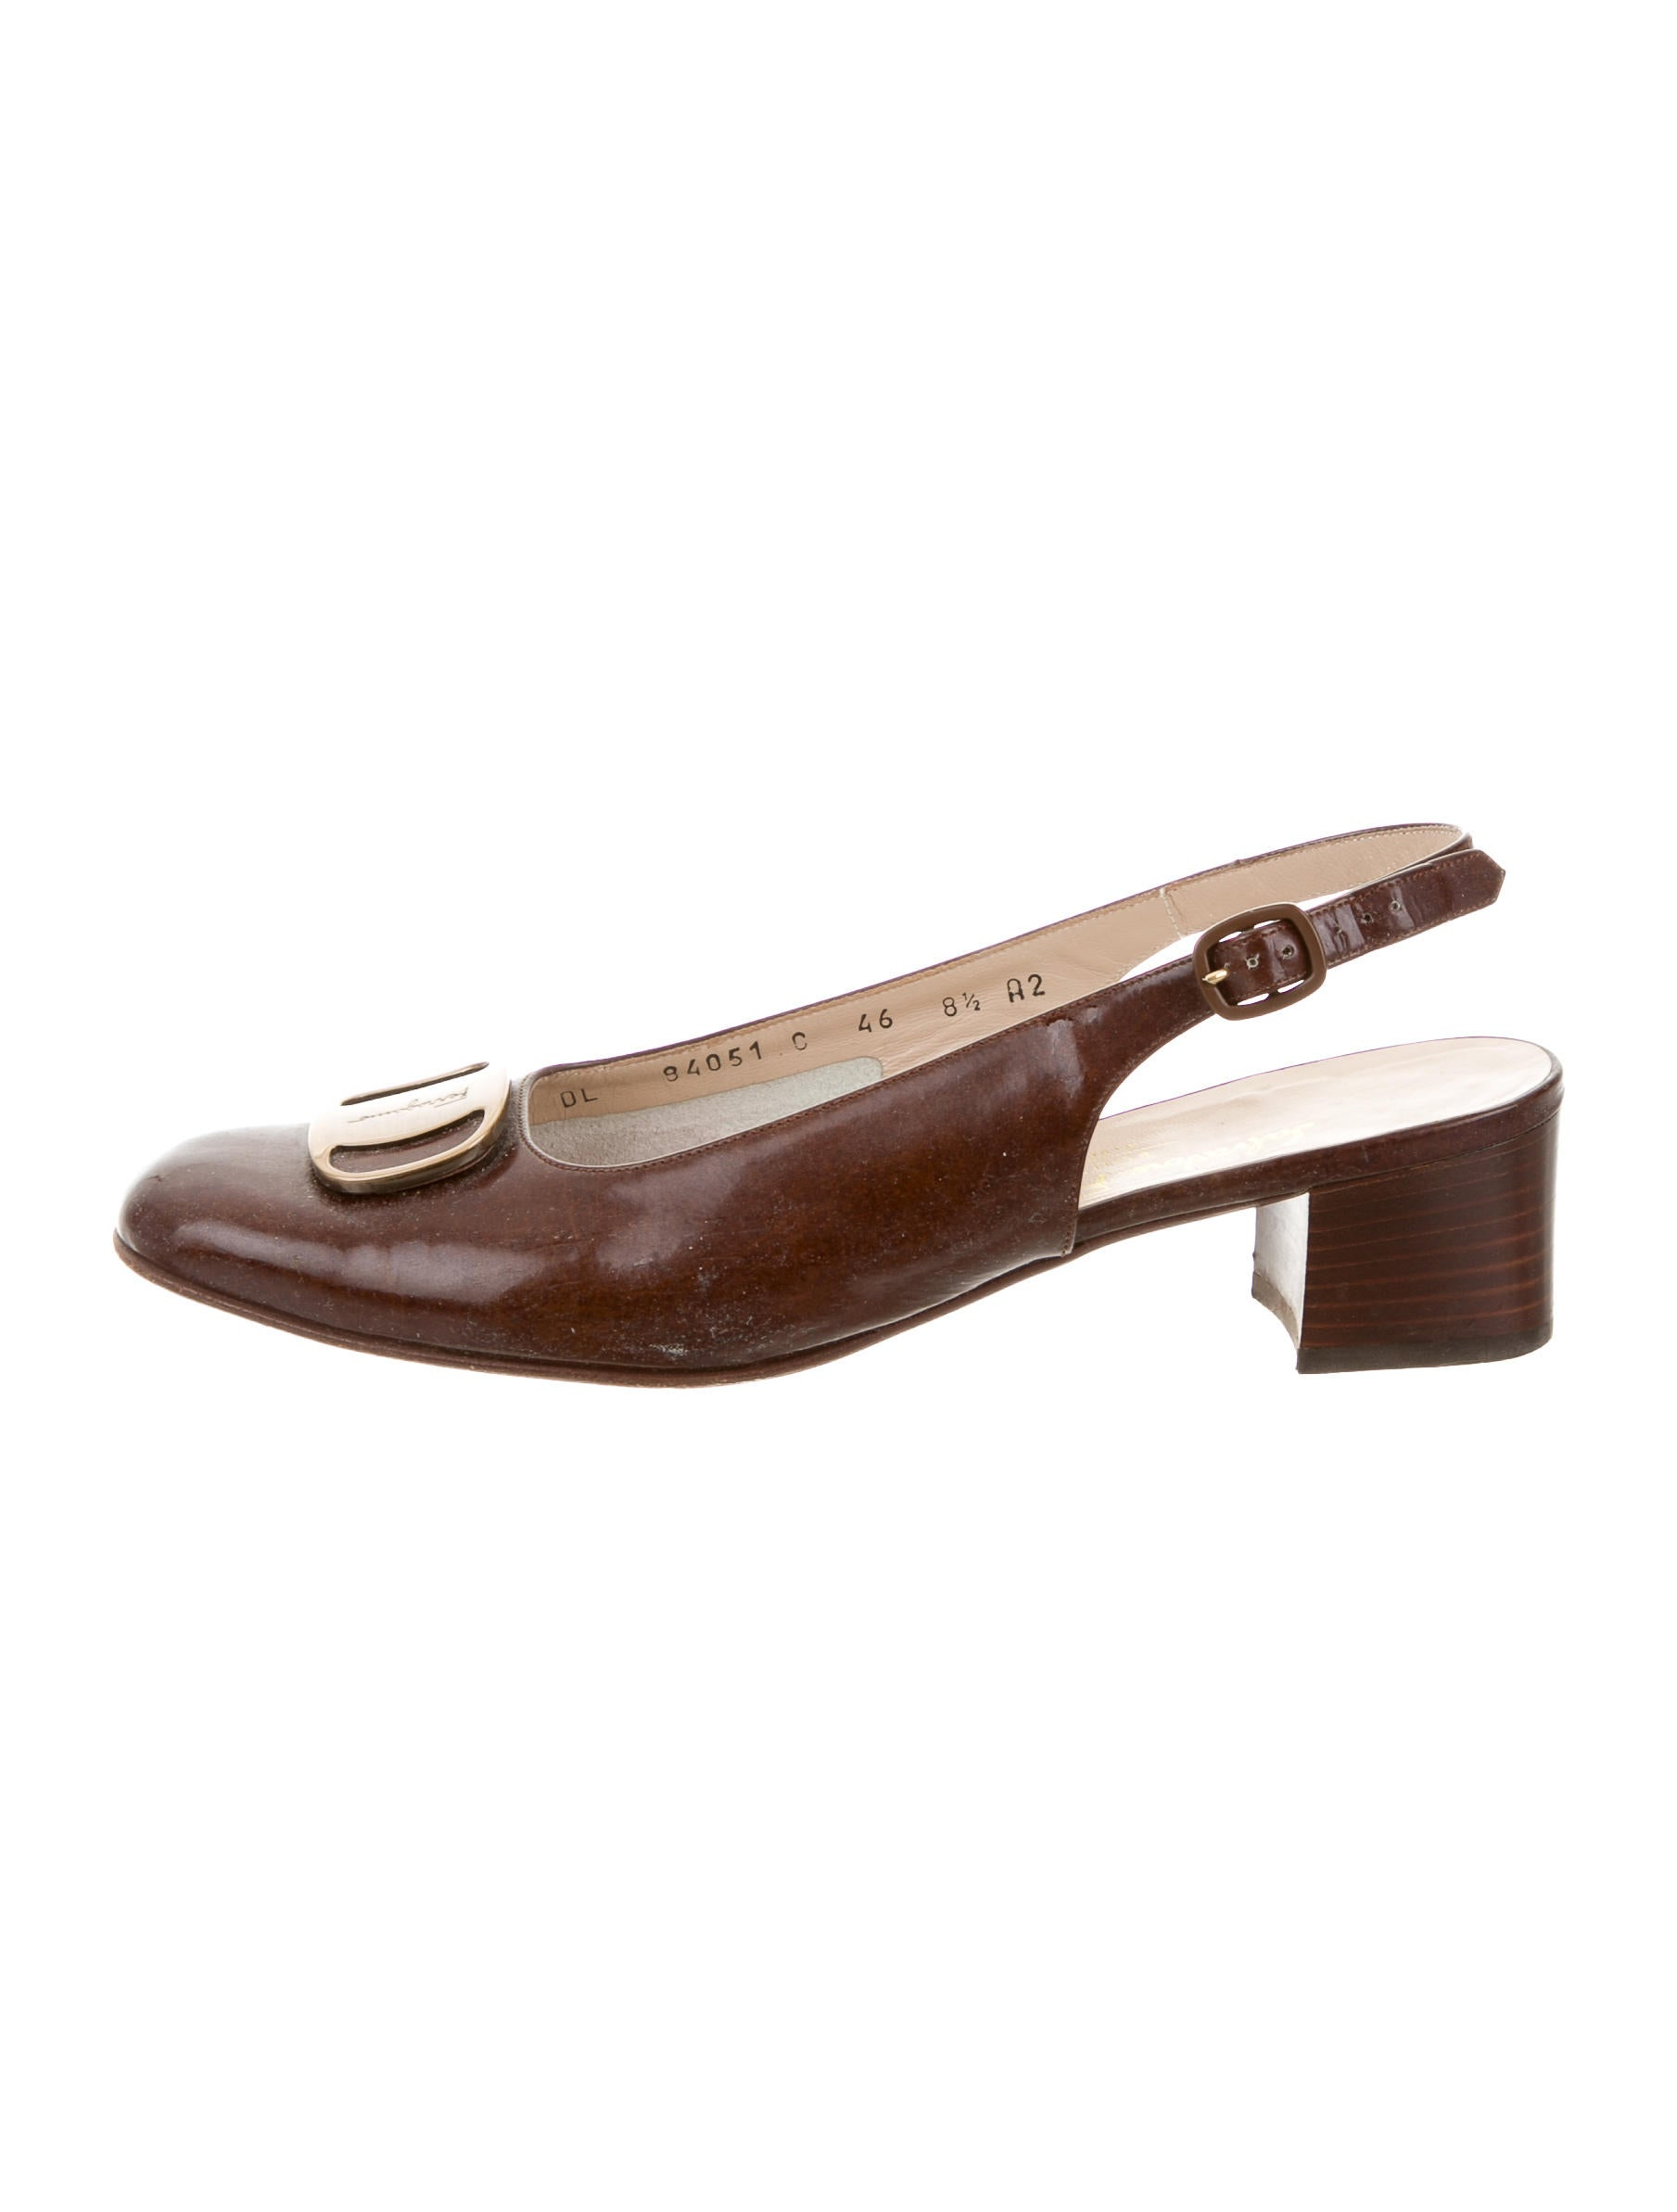 salvatore ferragamo logo slingback pumps shoes sal37926 the realreal. Black Bedroom Furniture Sets. Home Design Ideas